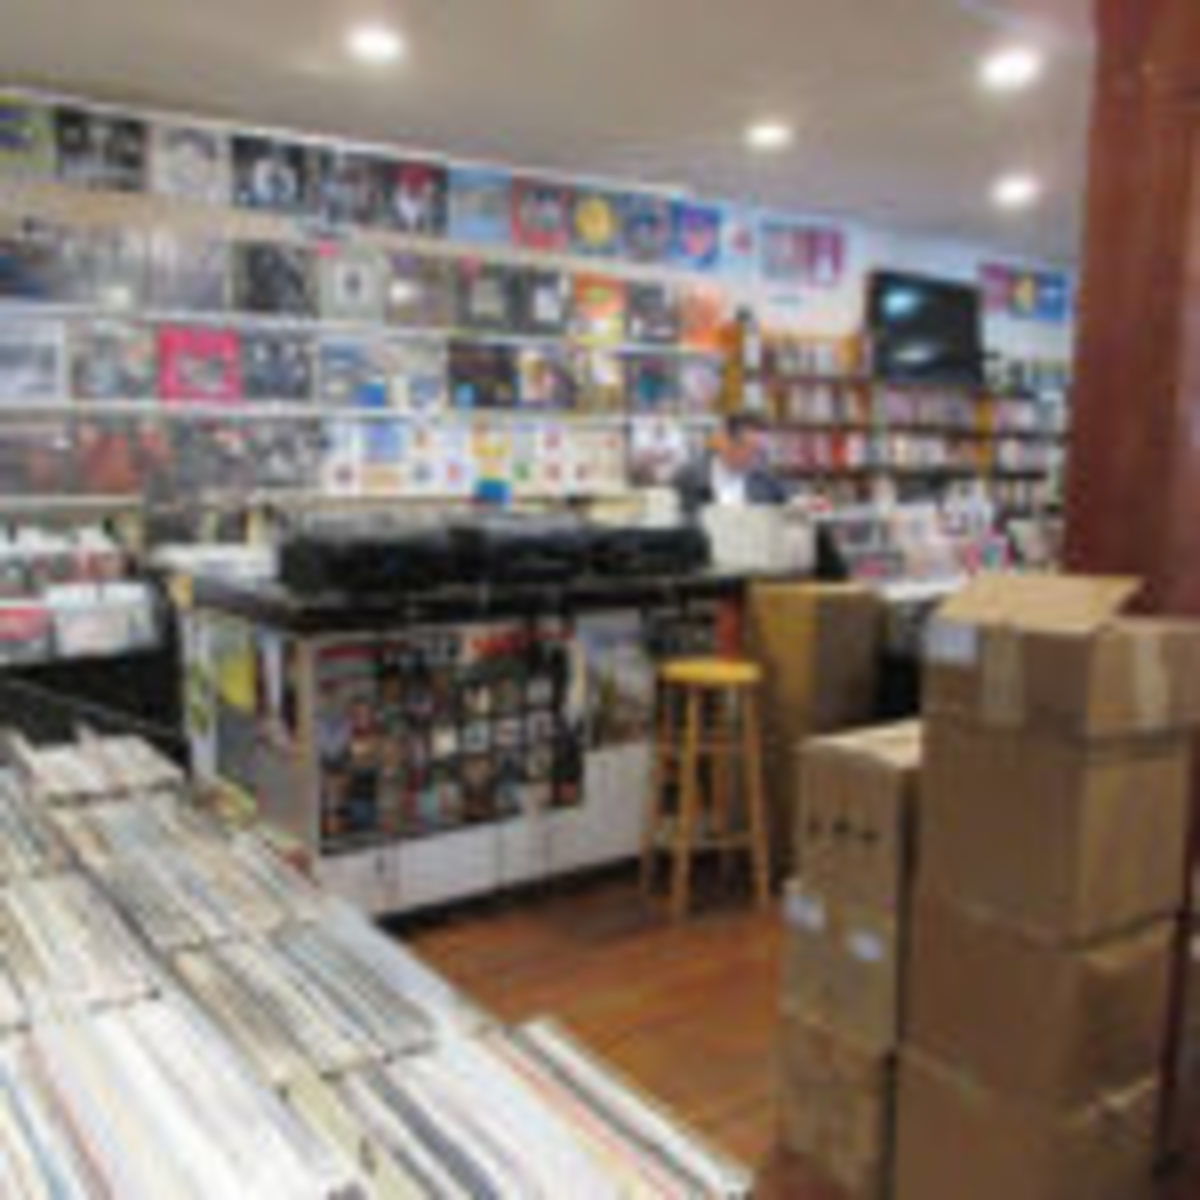 Louisiana Music Factory record store, Frenchmen Street, Wikipedia Source: https://commons.wikimedia.org/wiki/File:LA_Music_Factory_Feb2016_4.jpg. This file is licensed under theCreative Commons Attribution 2.0 Genericlicense.